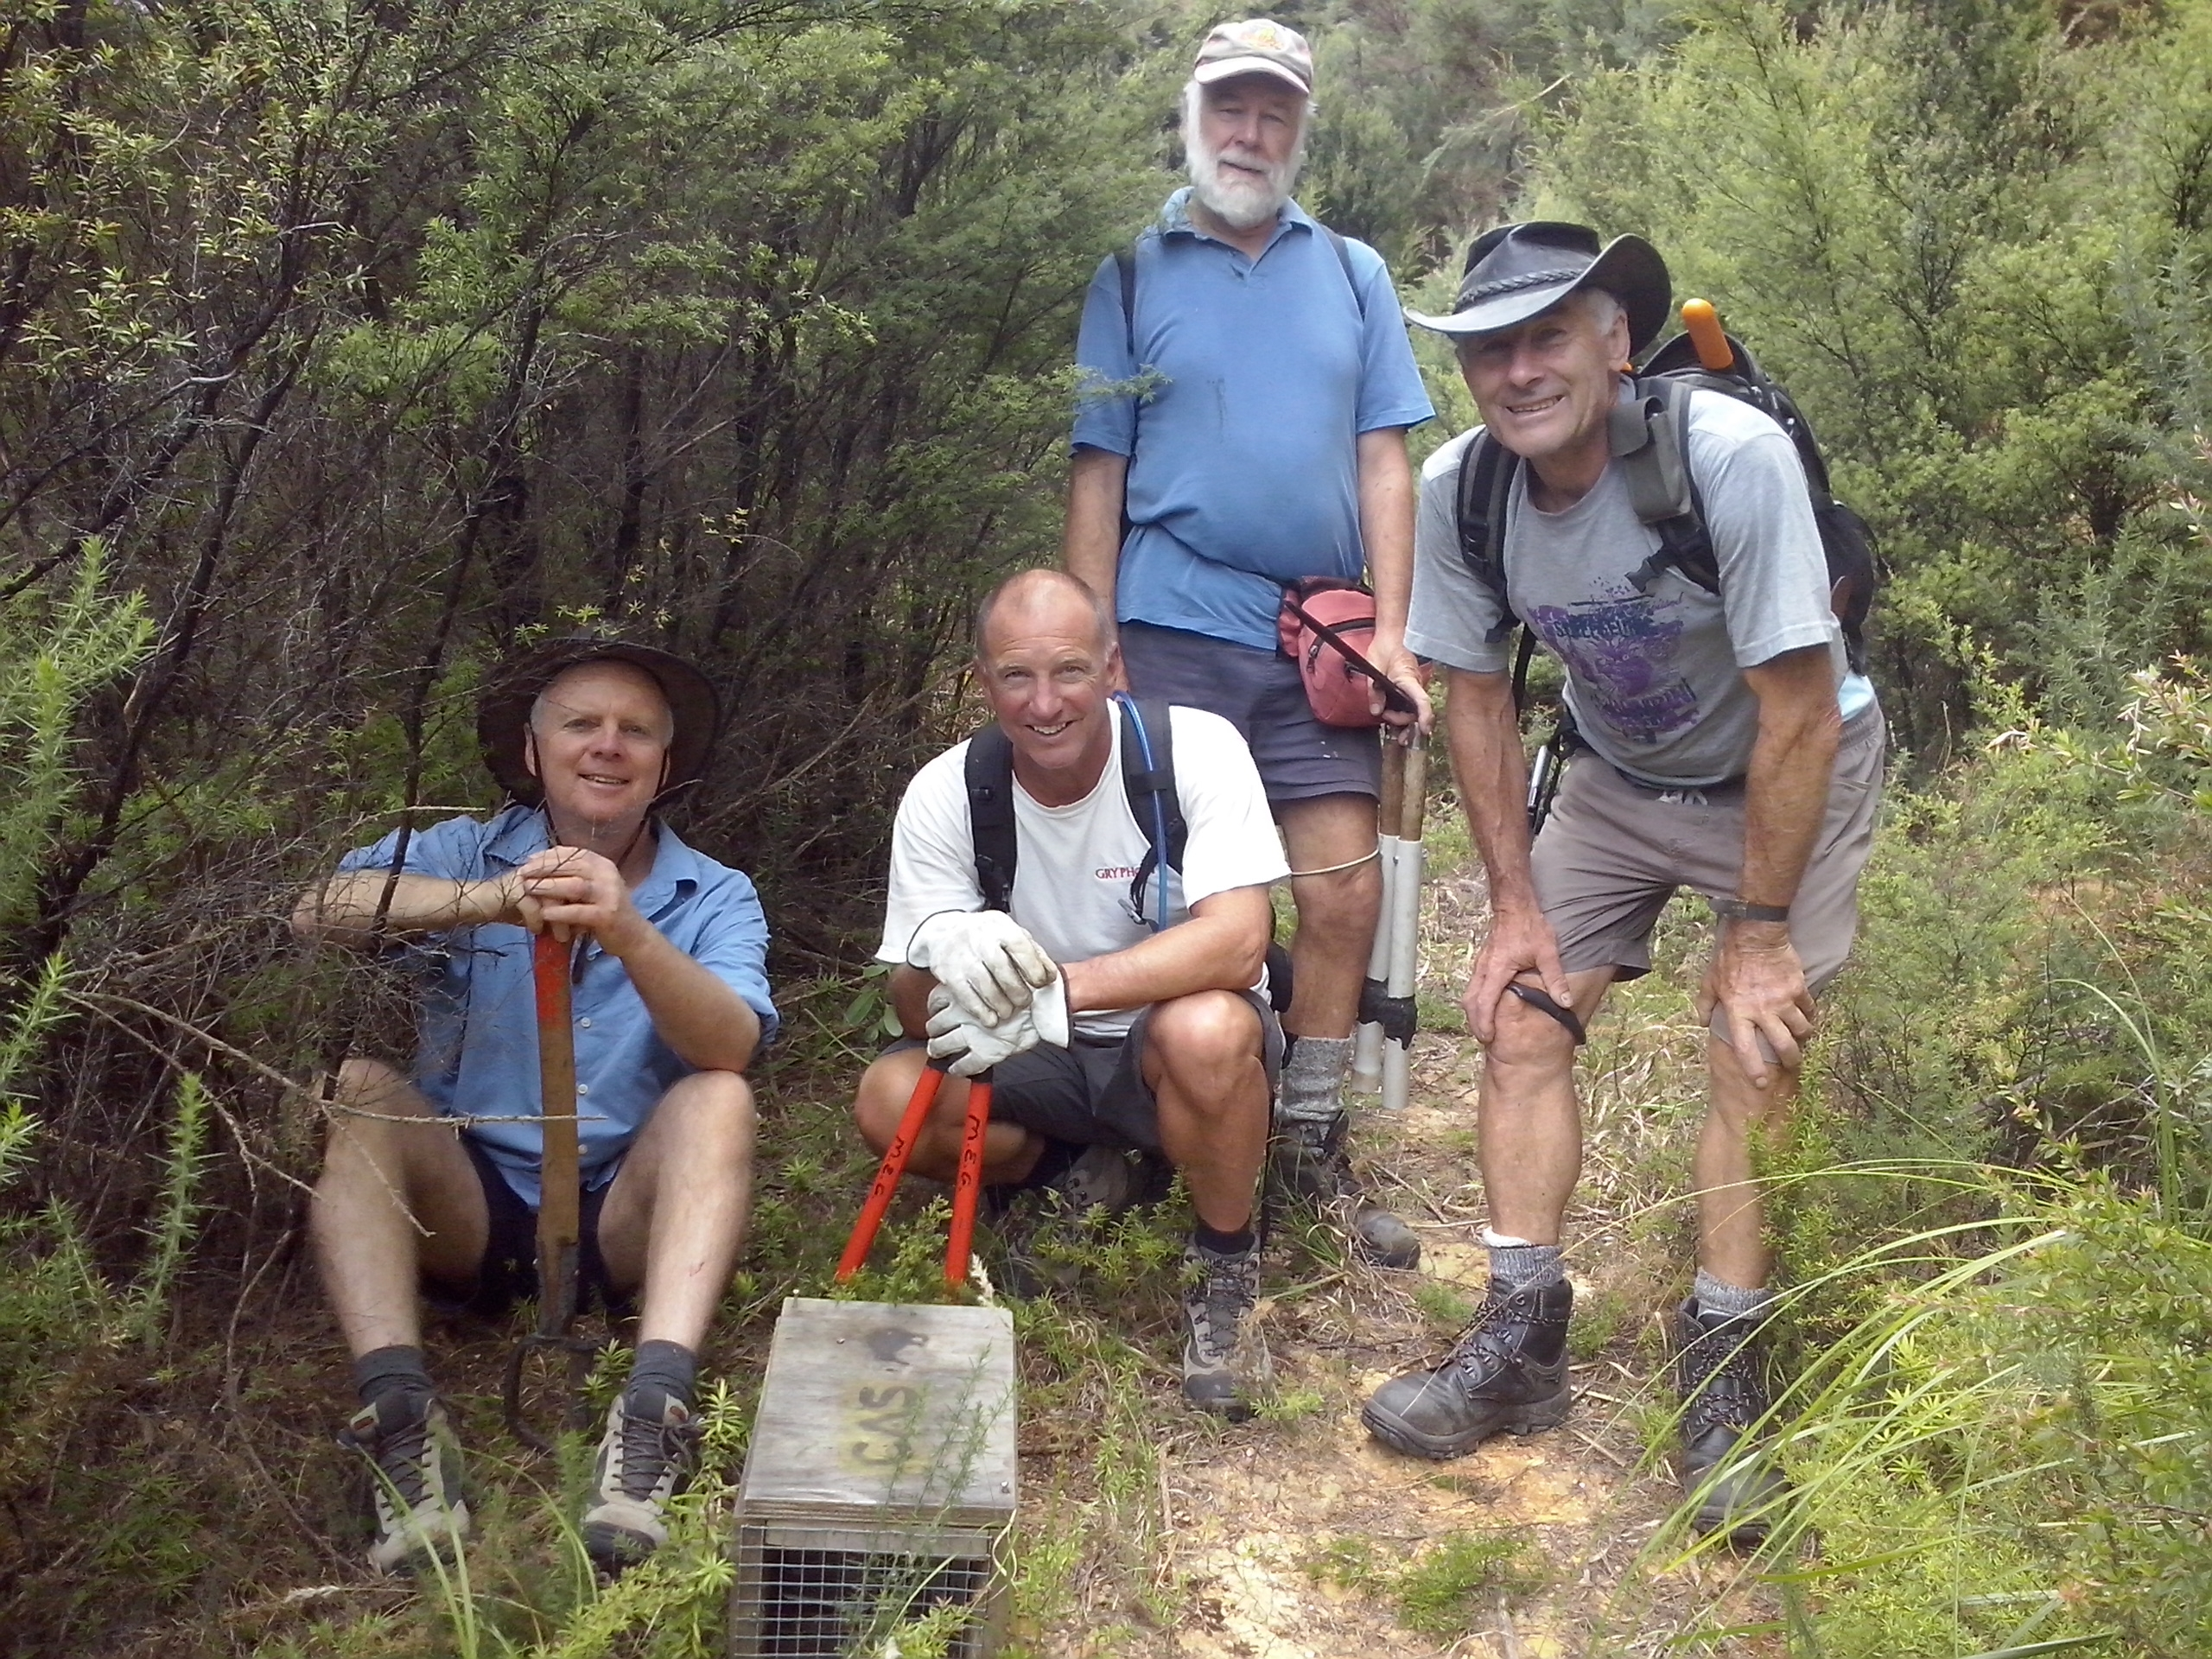 Volunteer track-cutters in the Coromandel Kiwi Project